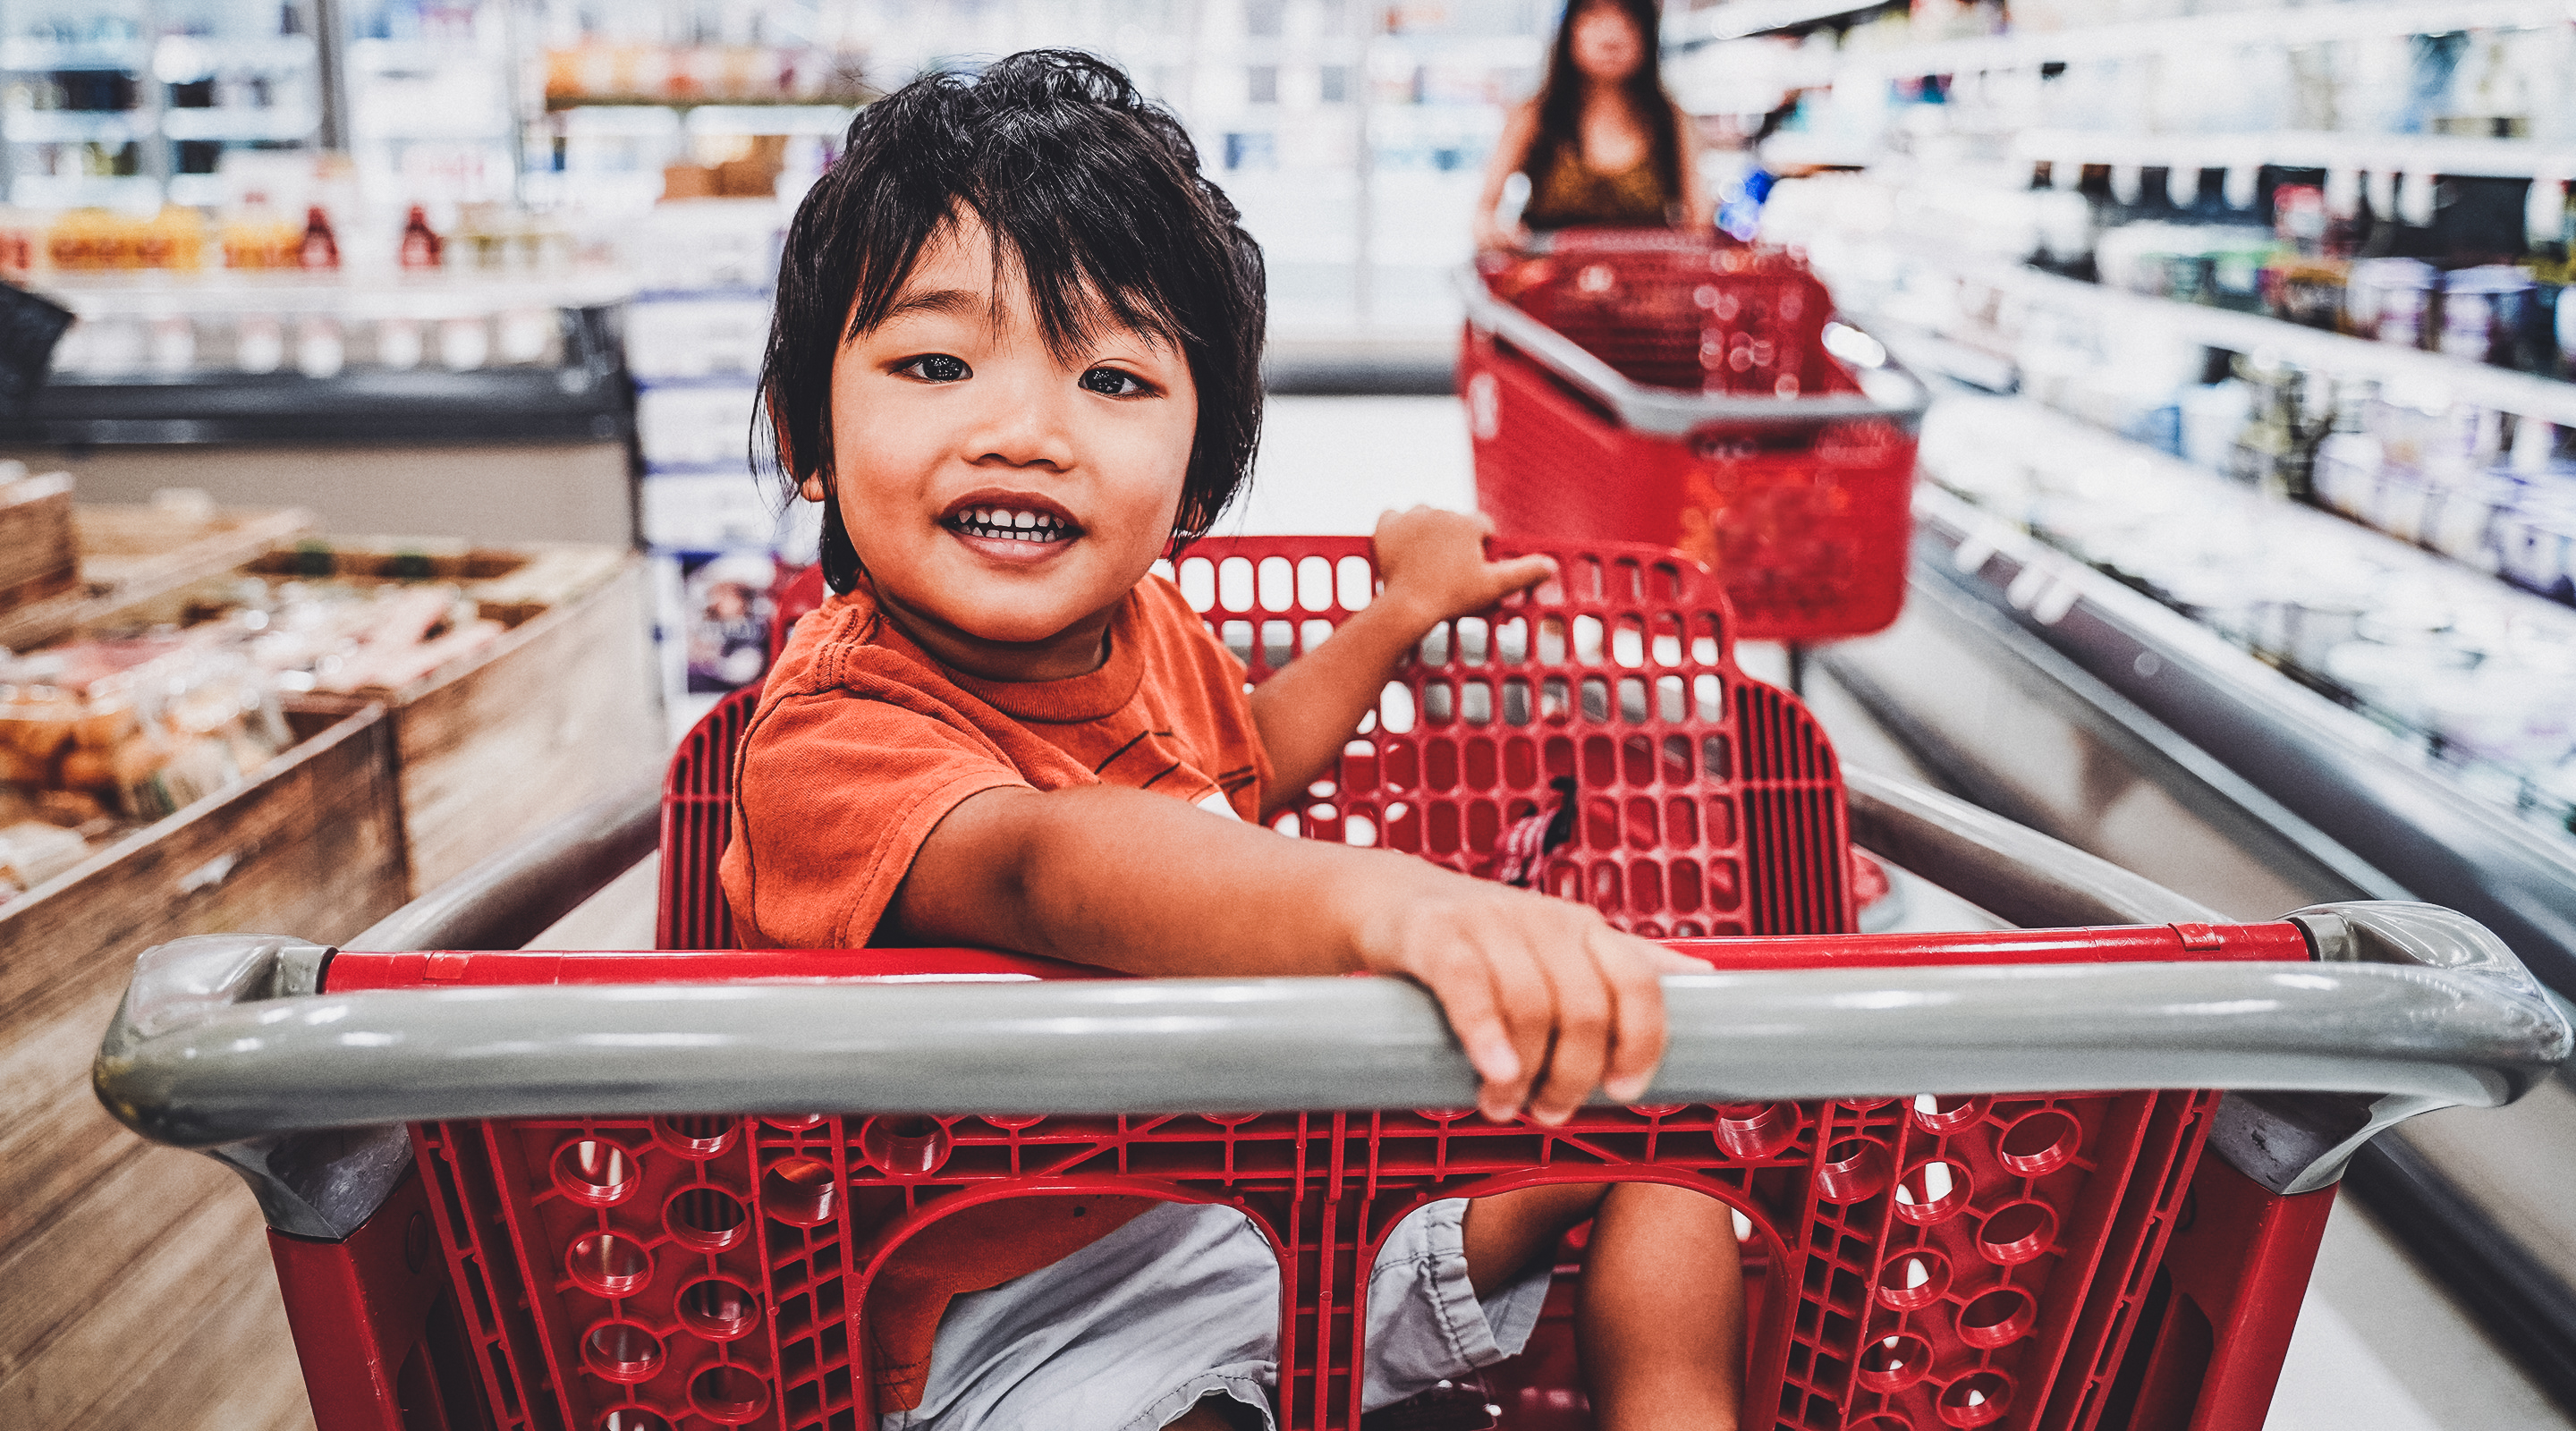 Close up photo of a child sitting in the seat of a shopping cart inside a grocery store. The child is looking directly at the camera and smiling